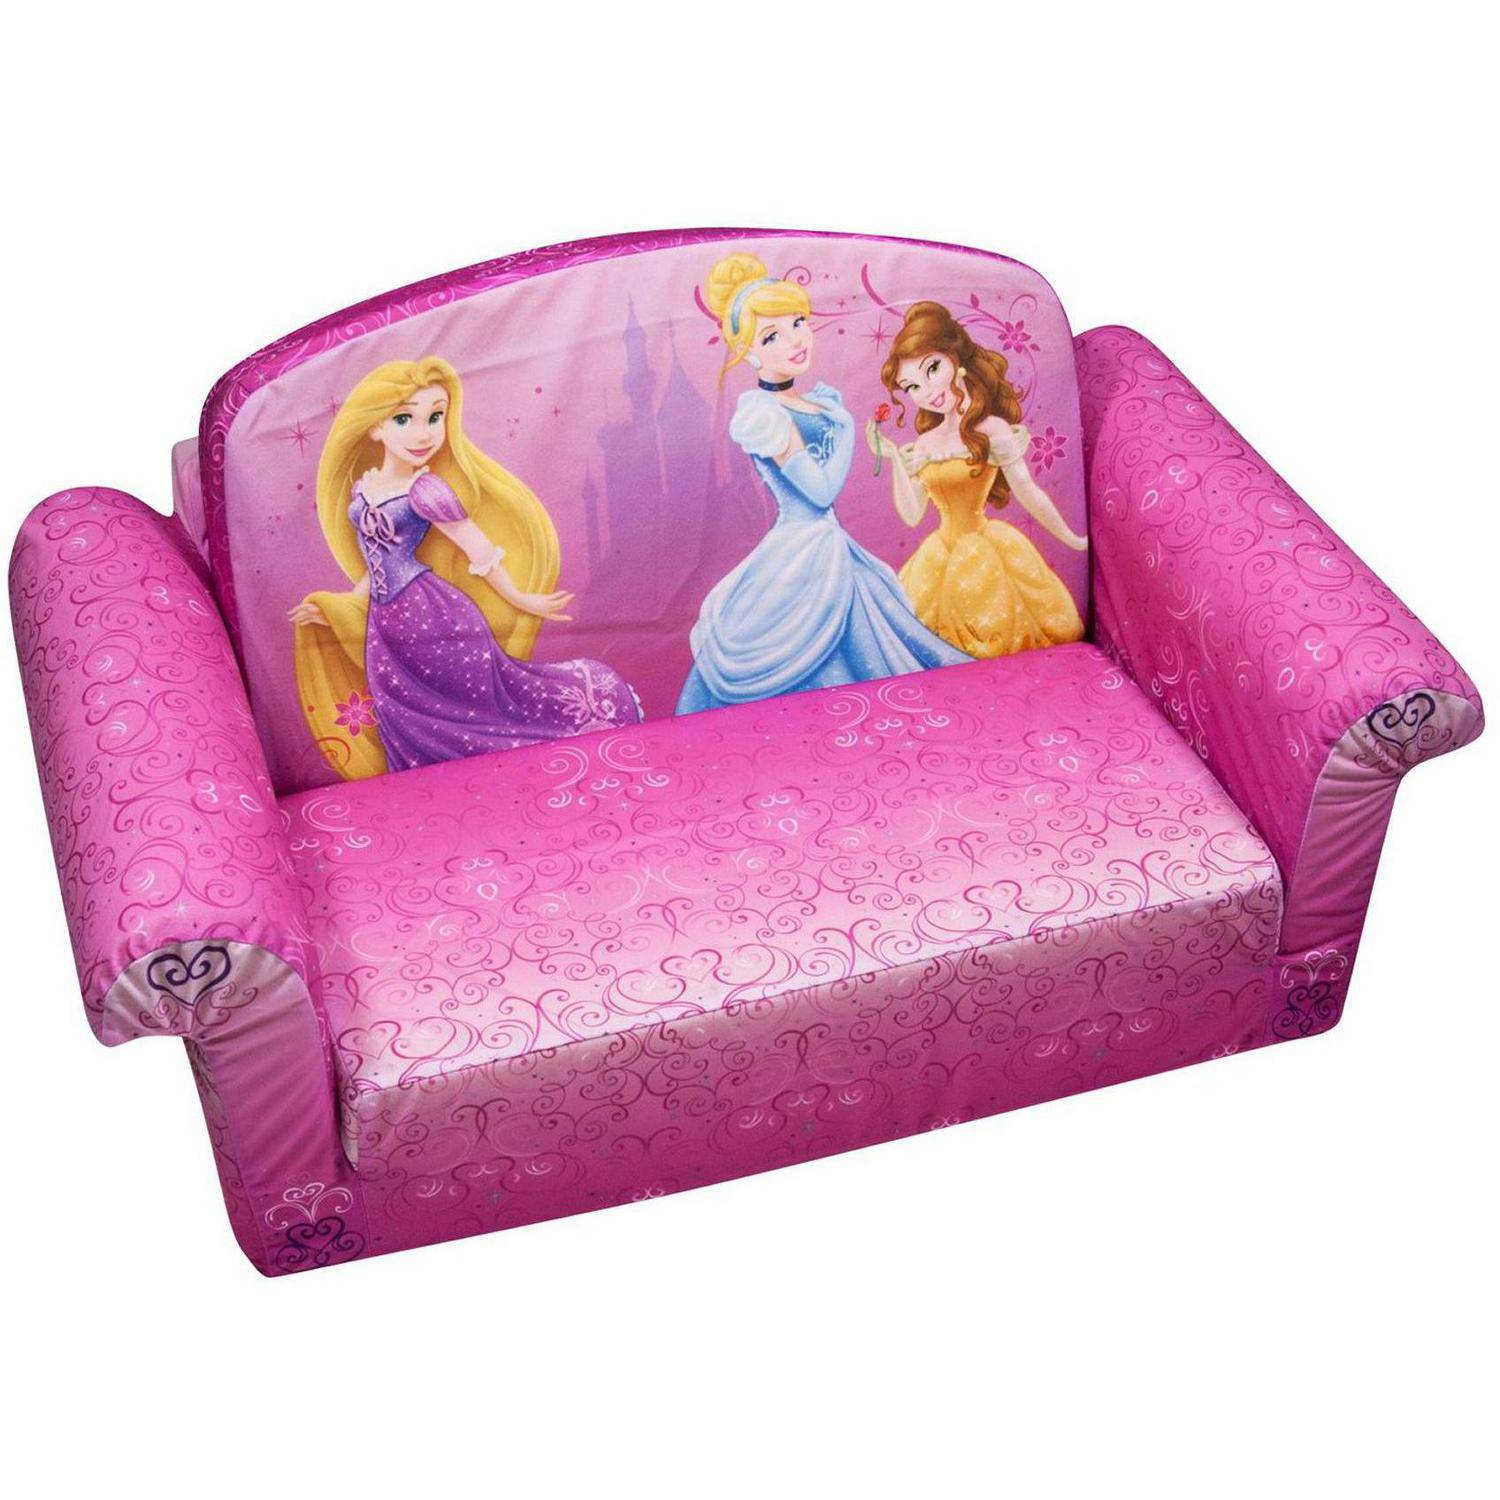 Marshmallow 2 In 1 Flip Open Sofa Disney Princess Walmart Com